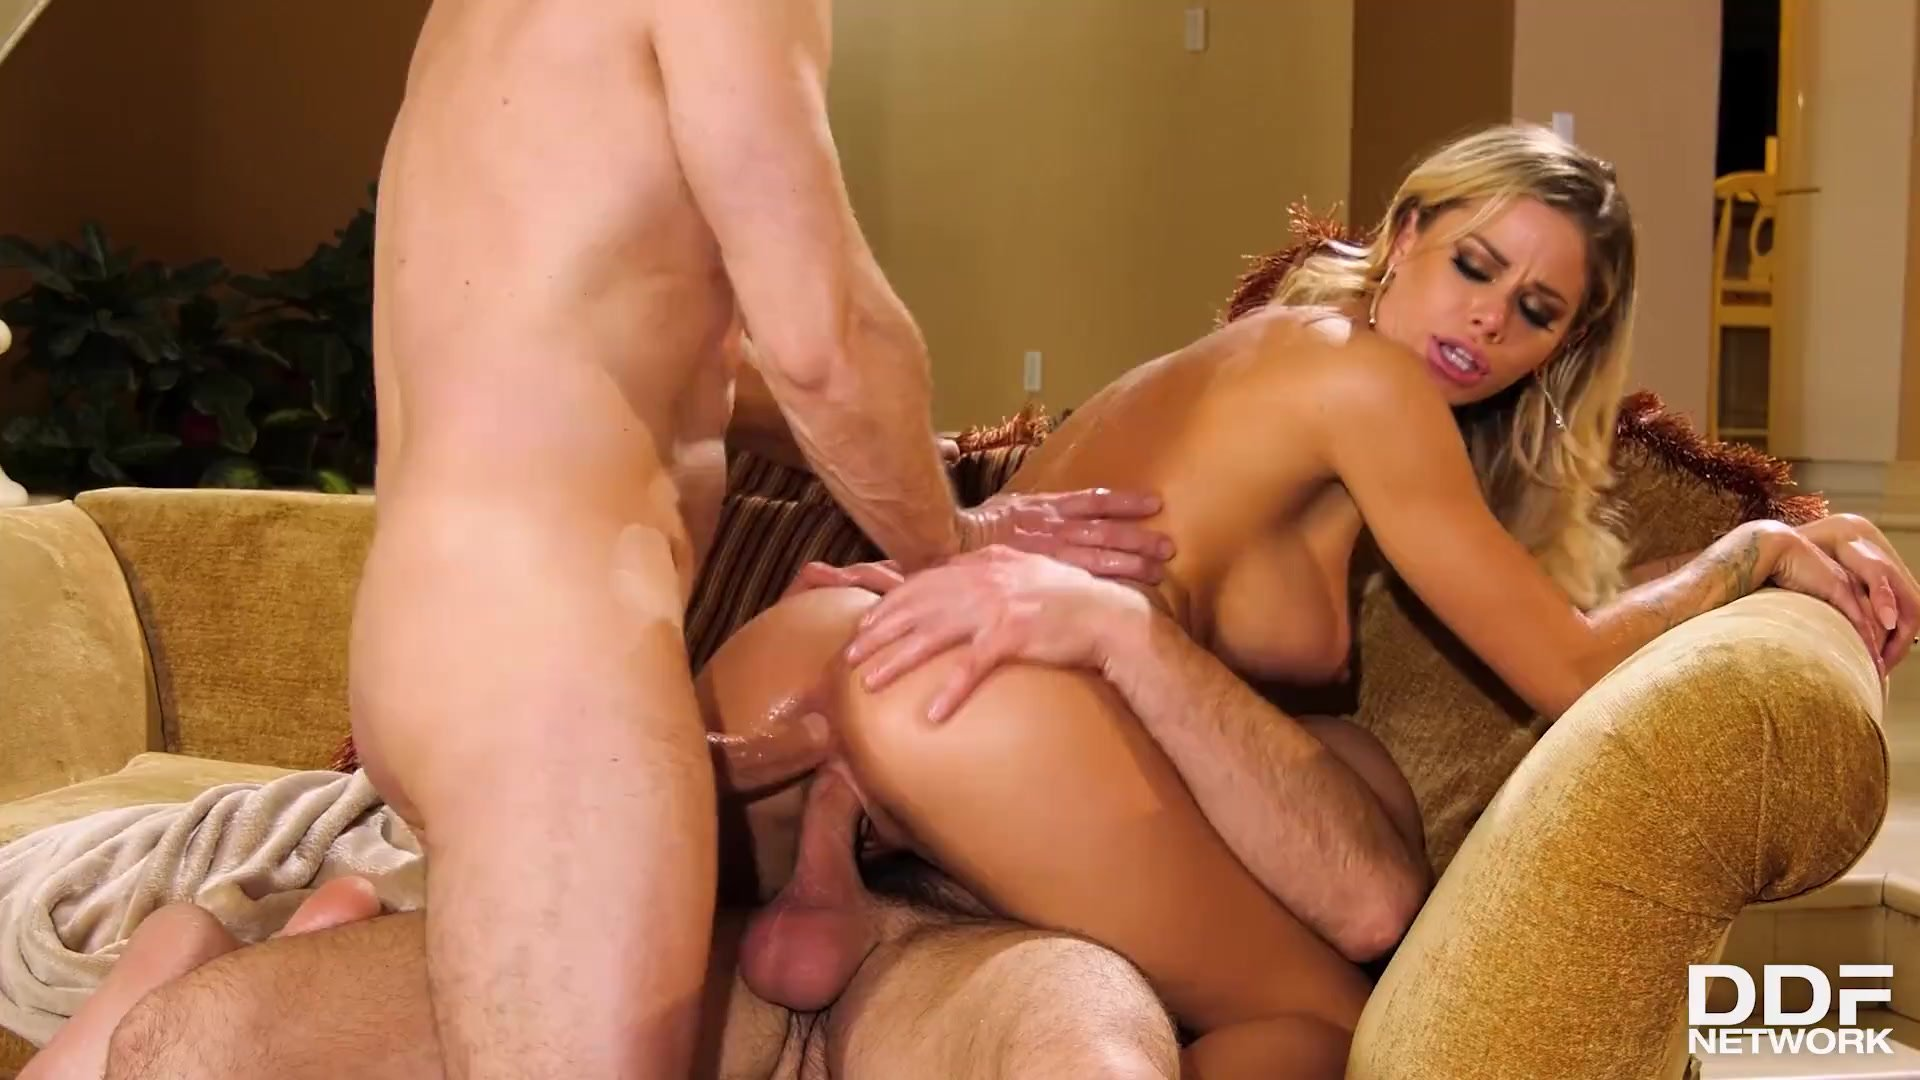 American glamour babe Jessa Rhodes can't get enough double penetration